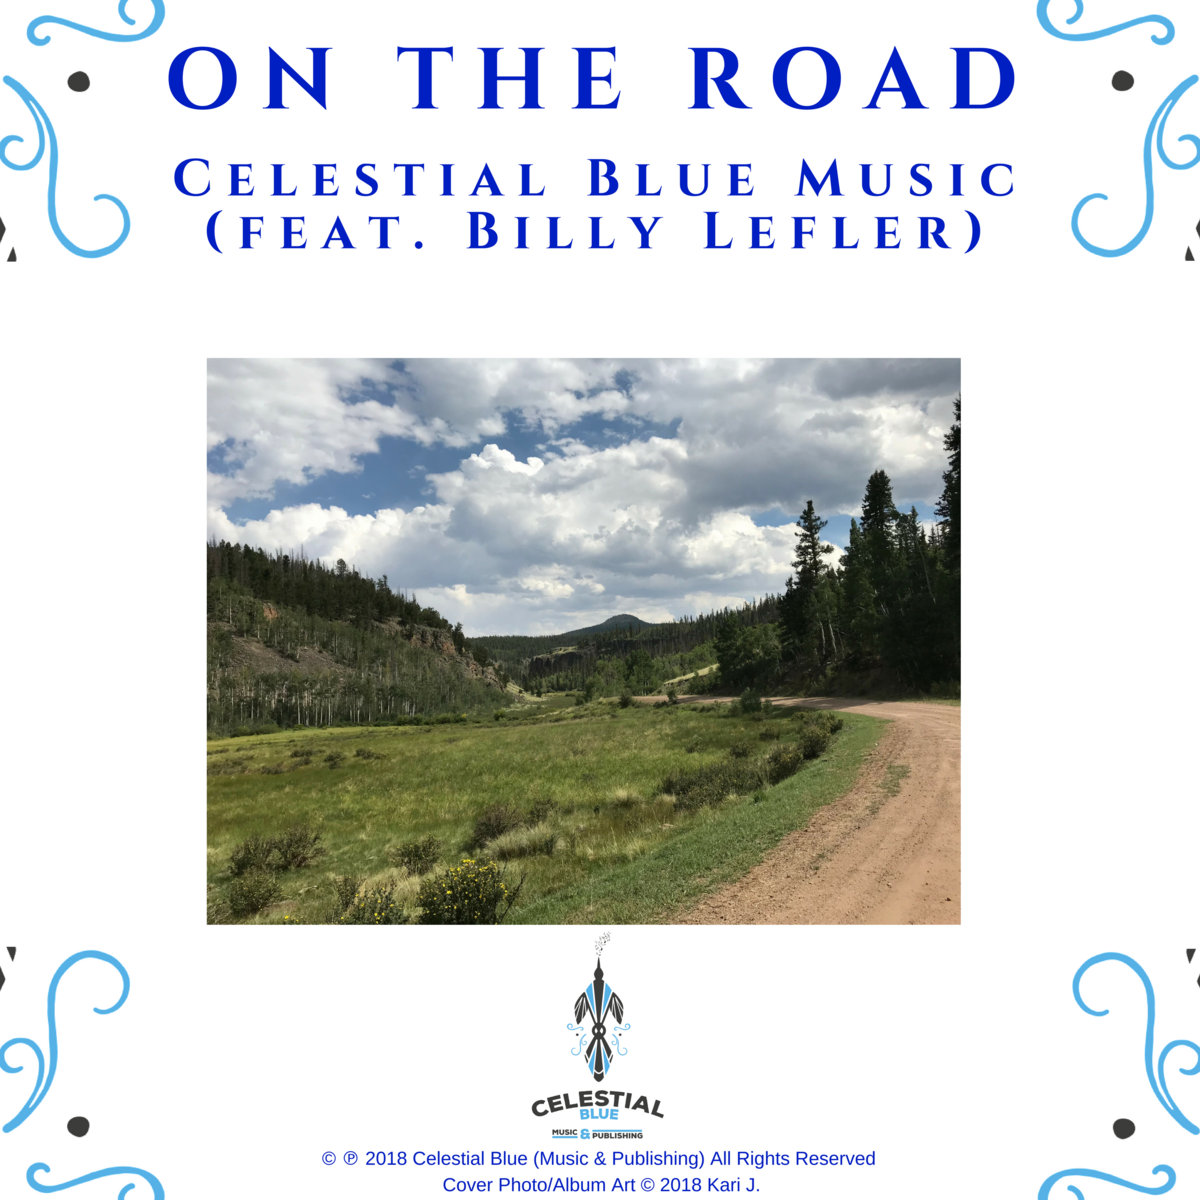 On the Road by Celestial Blue Music